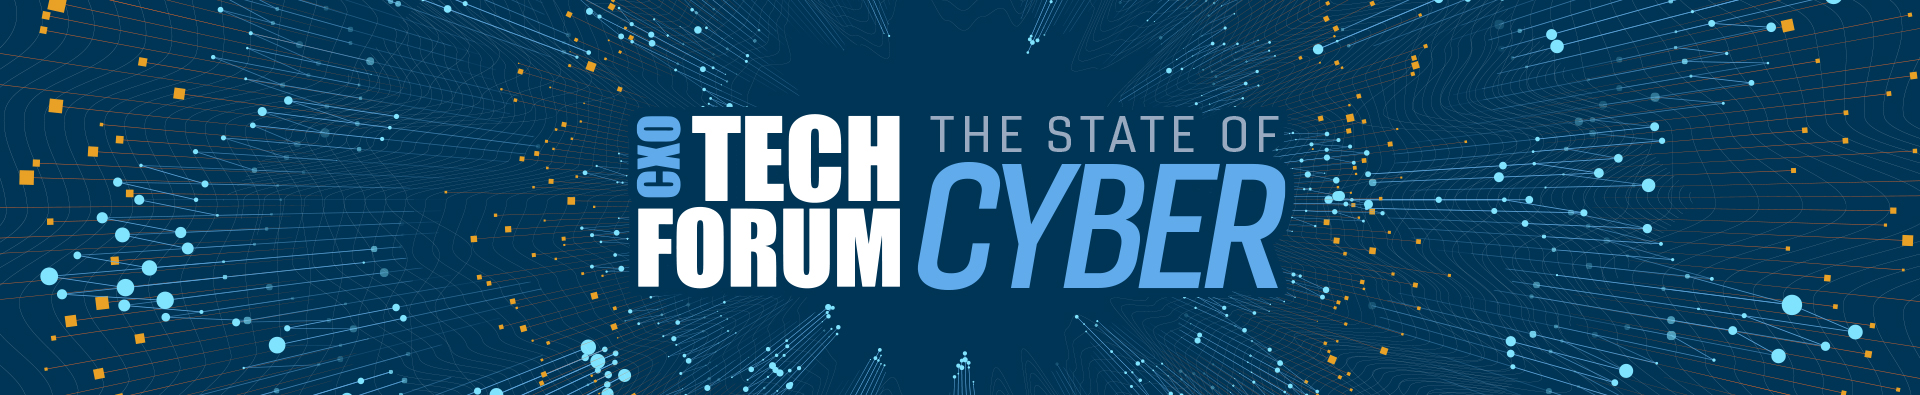 CXO Tech Forum: State of Cyber 2019 | GovernmentCIO Media